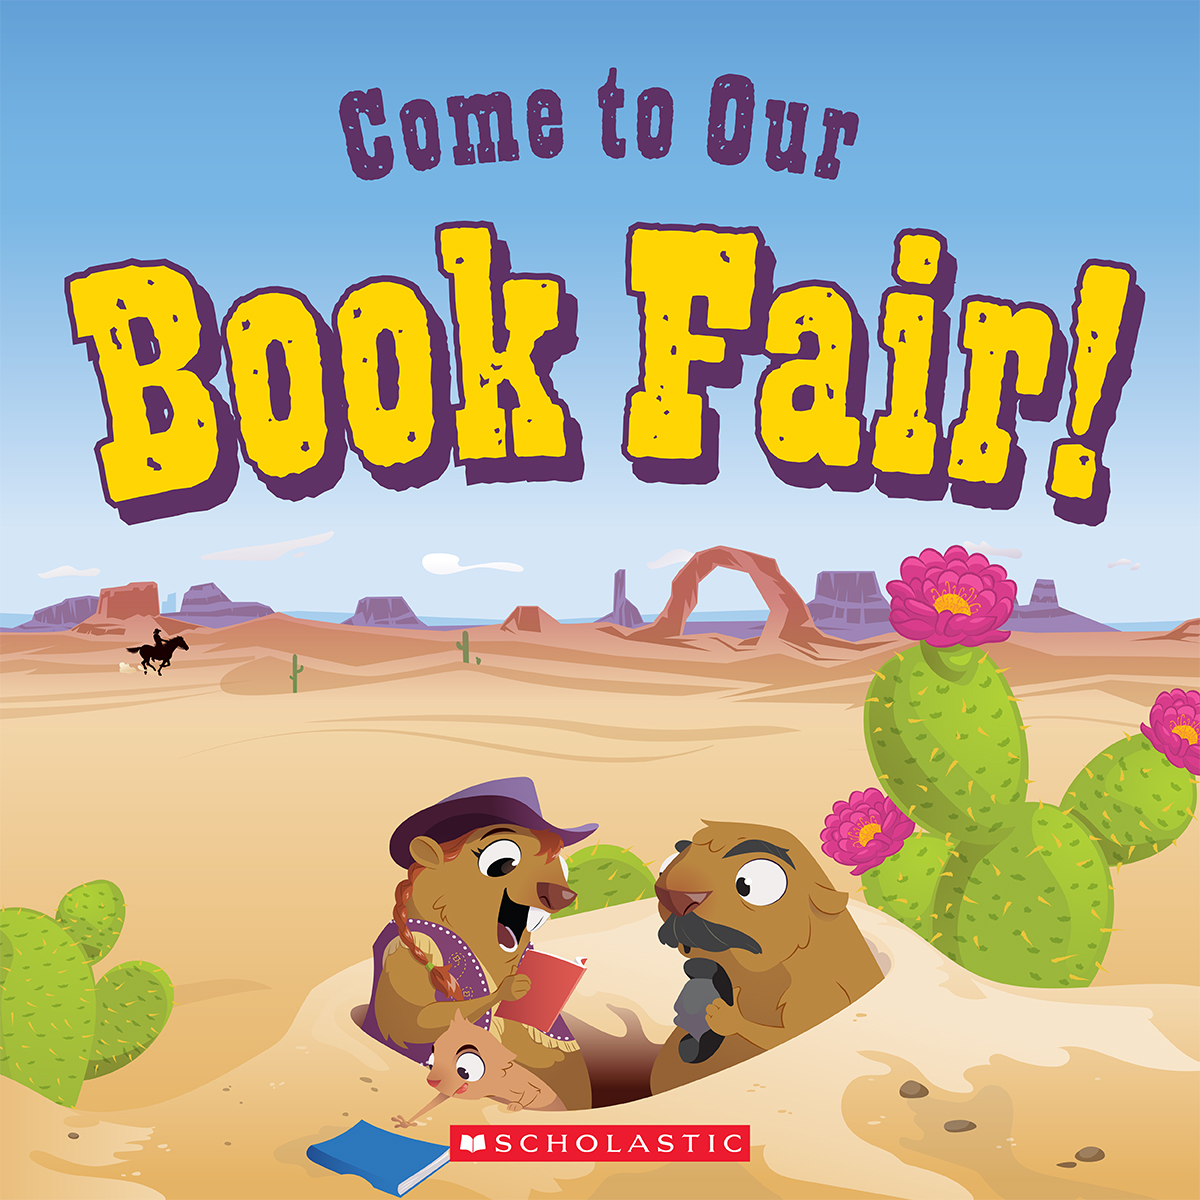 hershey pa welcome to the goddard school located in hershey pa 14093 17 18 social media reproducibles come to our book fair es